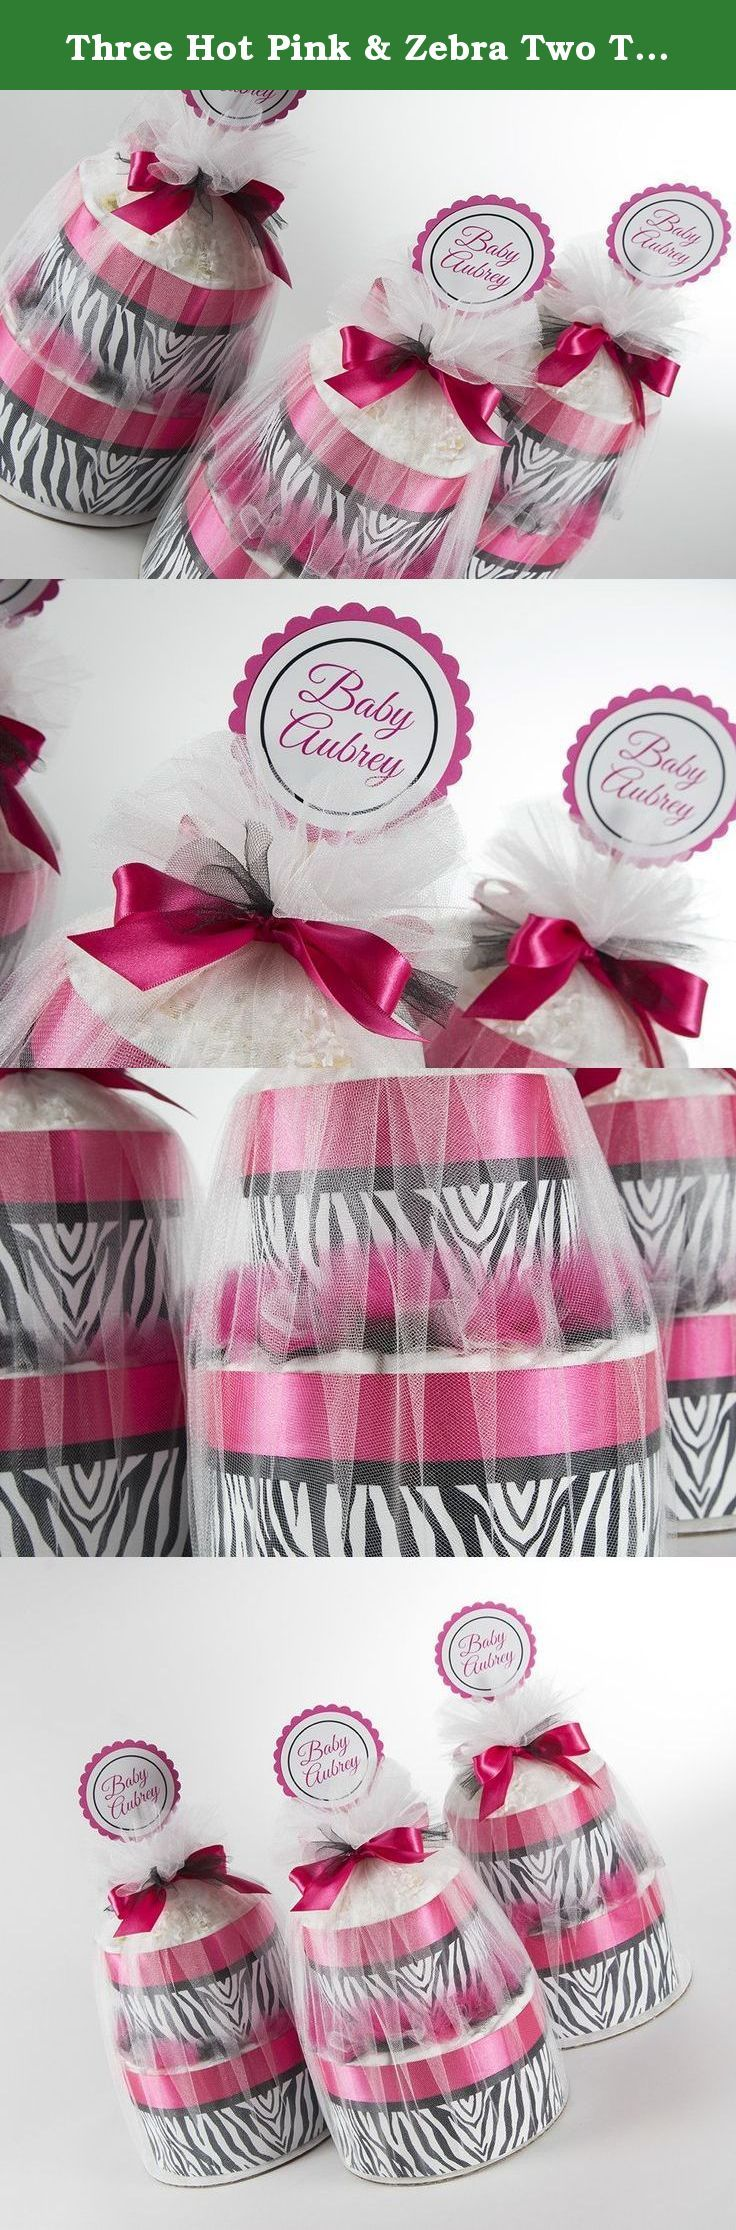 "Three Hot Pink & Zebra Two Tier Mini Diaper Cakes. Baby Shower Centerpieces or Gift. Mini diaper cakes not only make unique and memorable gifts but also adorable centerpieces or decorations for baby showers. Each two tier mini diaper cakes include: 35 Pampers Swaddlers diapers, size 1 (8-14lb) premium diapers. These Diaper Cakes are perfect Hot Pink & Zebra color scheme Baby Showers. These two tier mini diaper cakes sit on a 8"" cake board. They are wrapped in tulle and decorated with..."